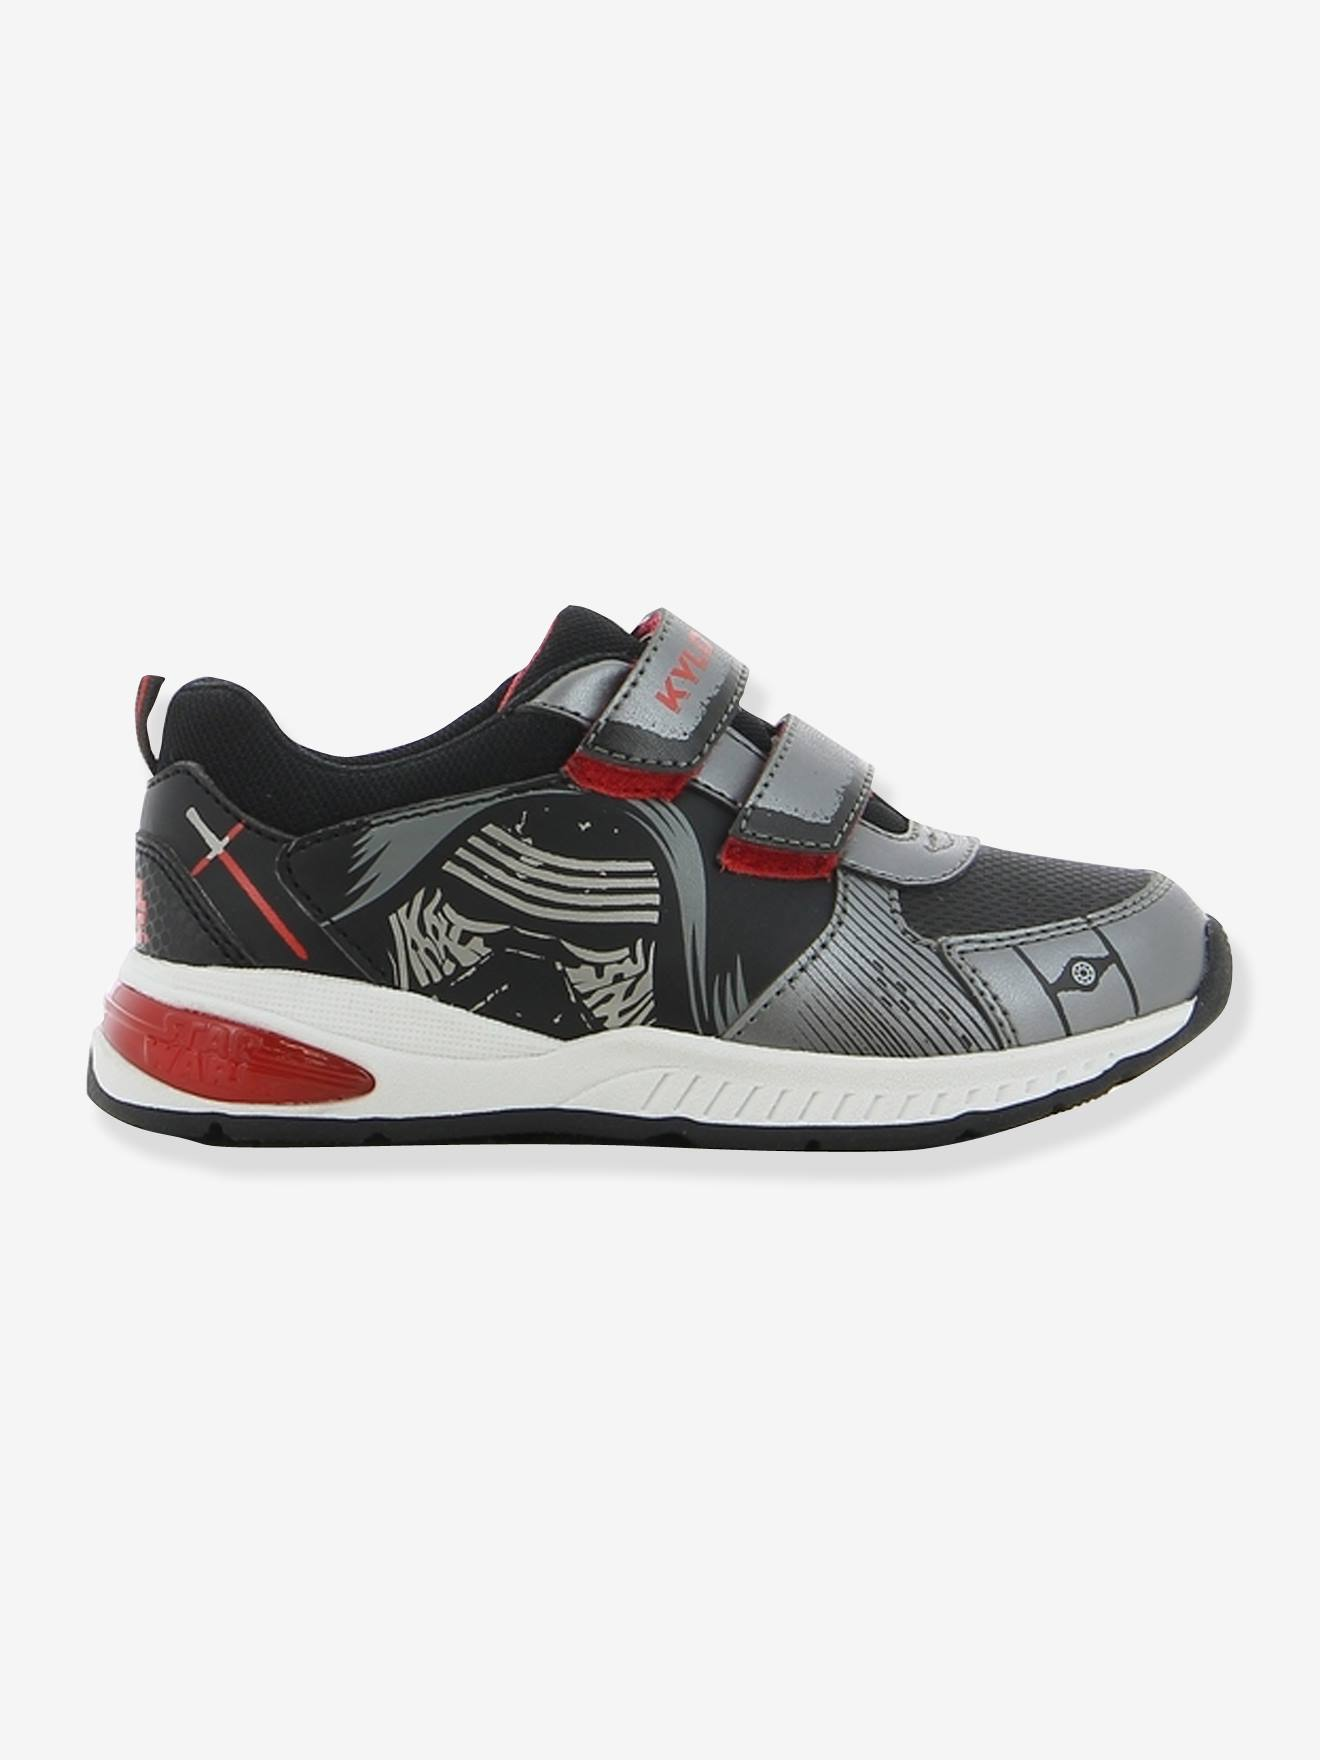 a6a7a454e892f Boys' Light-Up Trainers, Star Wars® Theme - black medium solid with design,  Shoes